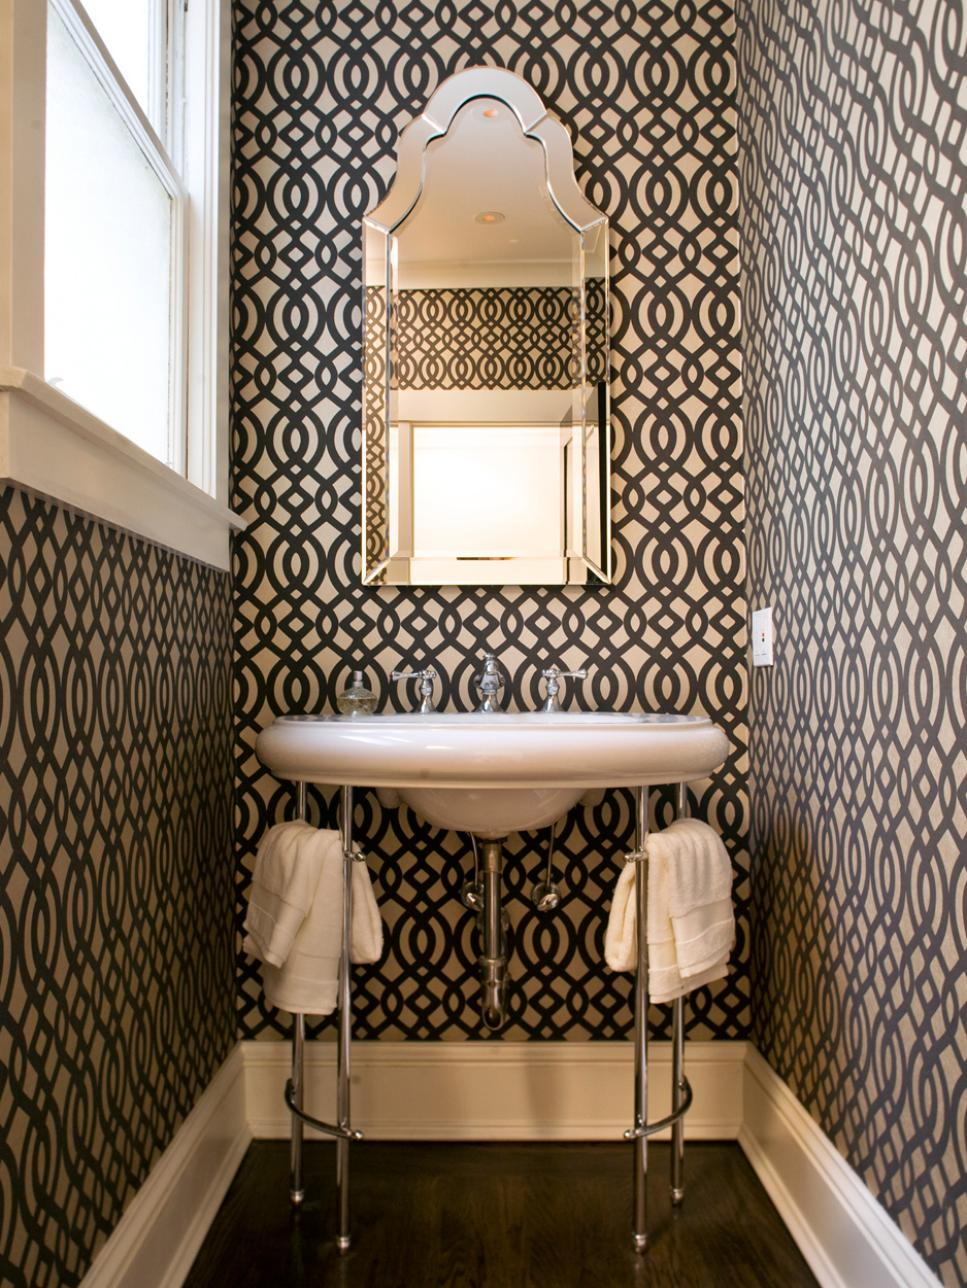 Design Ideas For Small Bathrooms 10 big ideas for small bathrooms bathroom ideas designs hgtv 20 Small Bathroom Design Ideas Bathroom Ideas Designs Hgtv